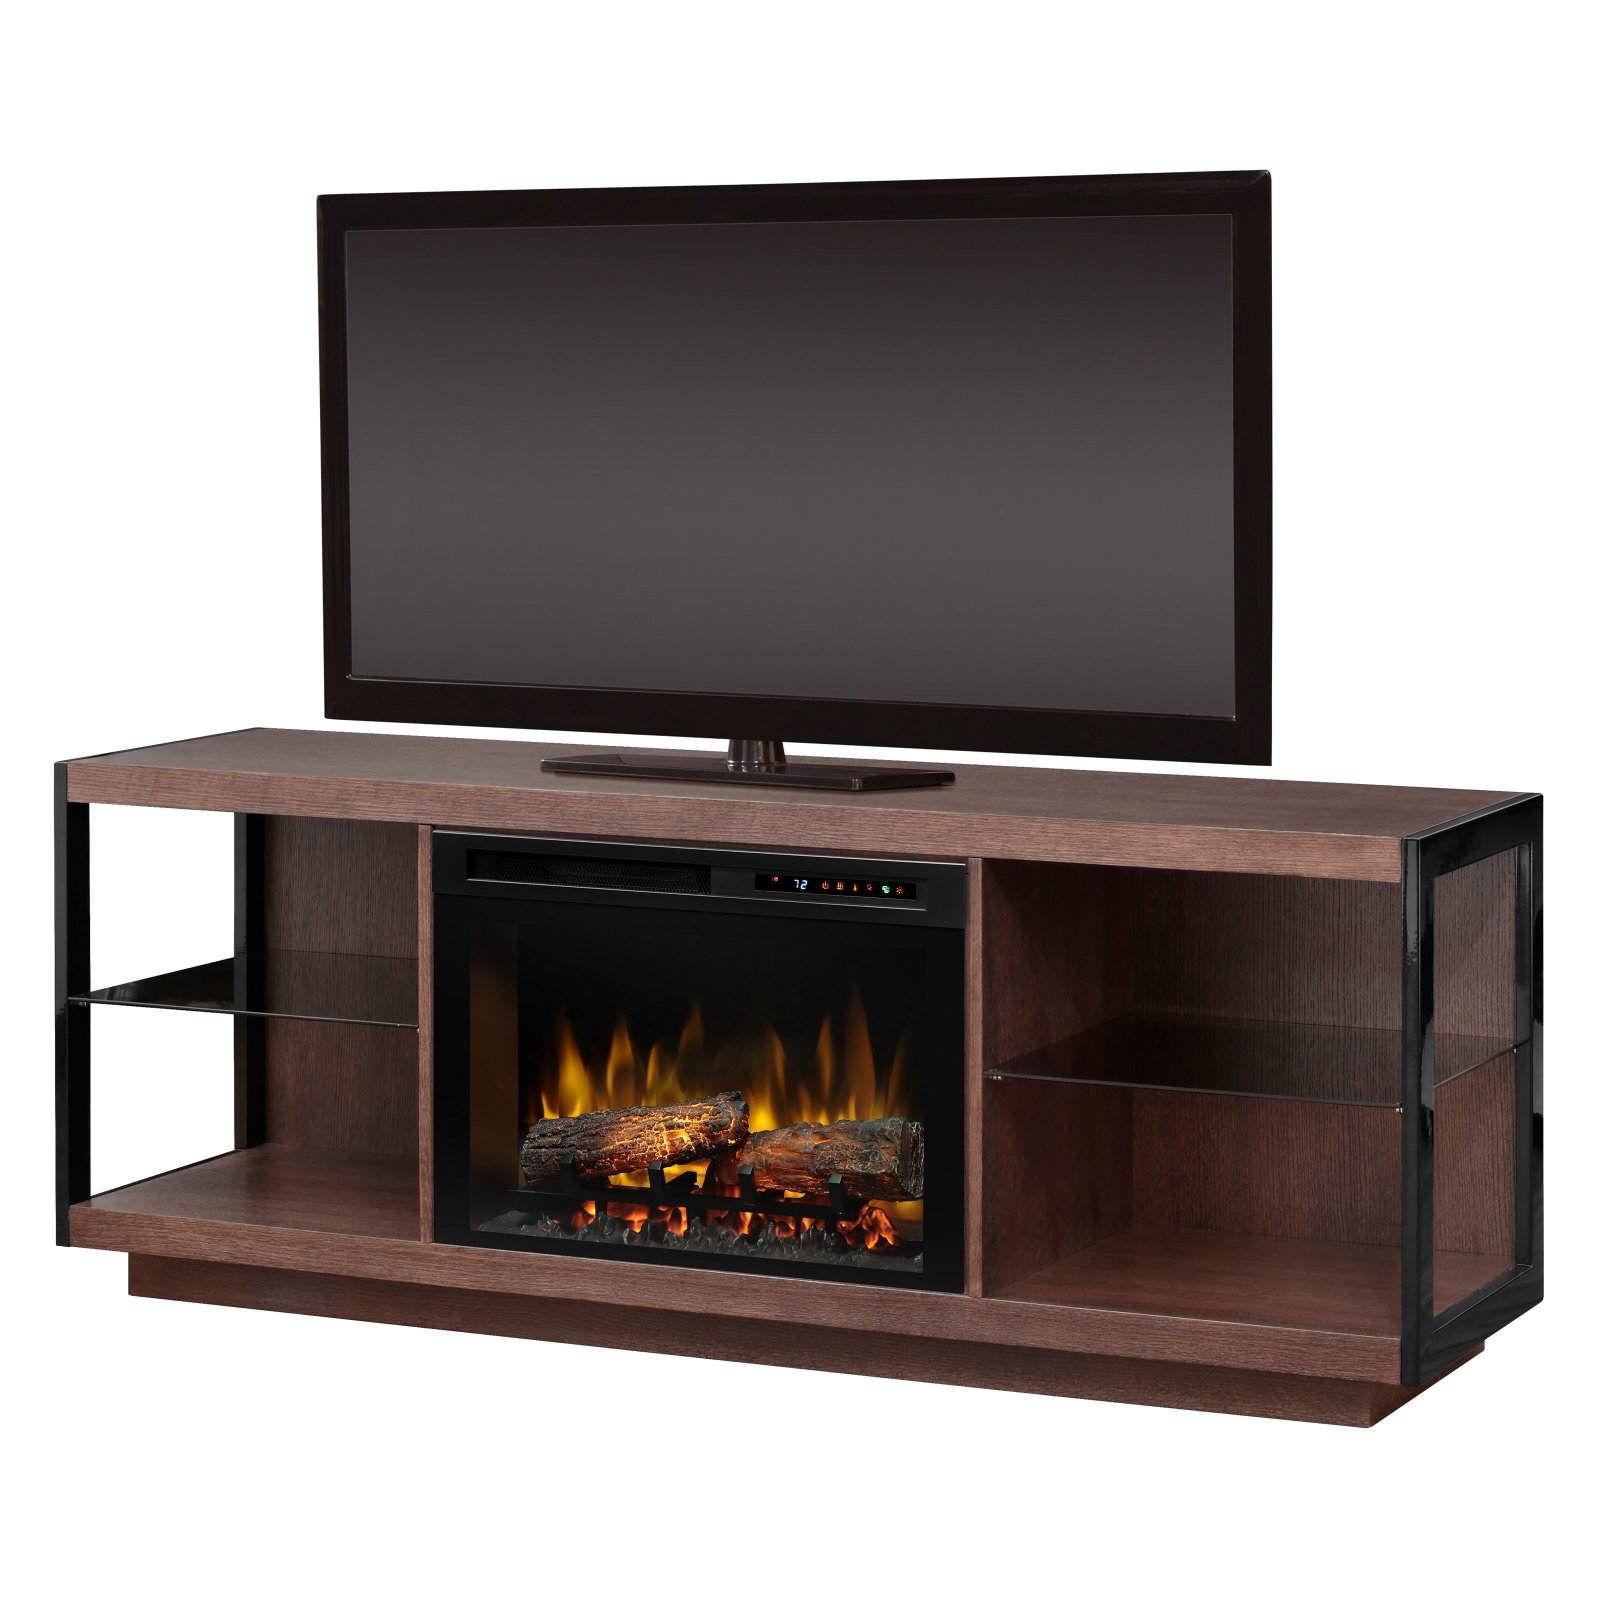 """Dimplex Leif Media Console Electric Fireplace With Acrylic Ember Bed for TVs up to 65"""", Turbinado Brown"""